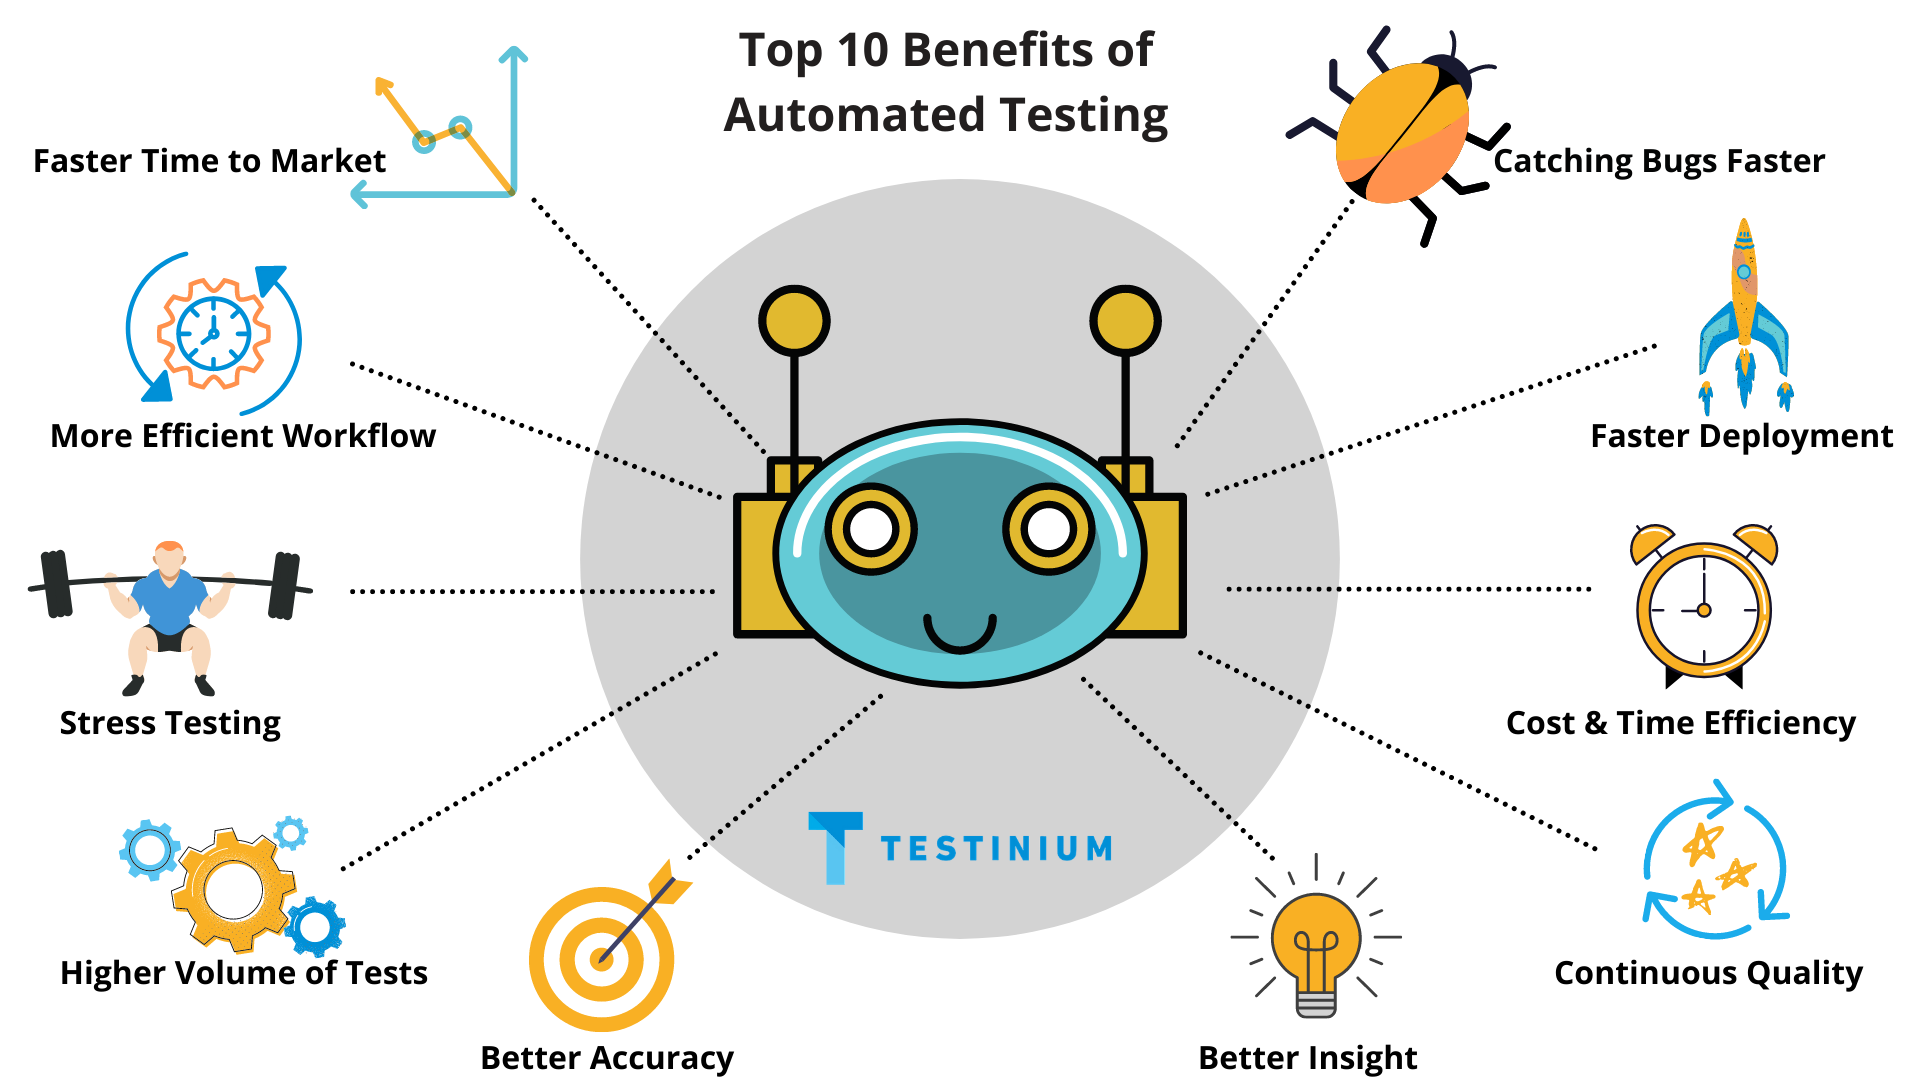 Top 10 Benefits of Automated Testing